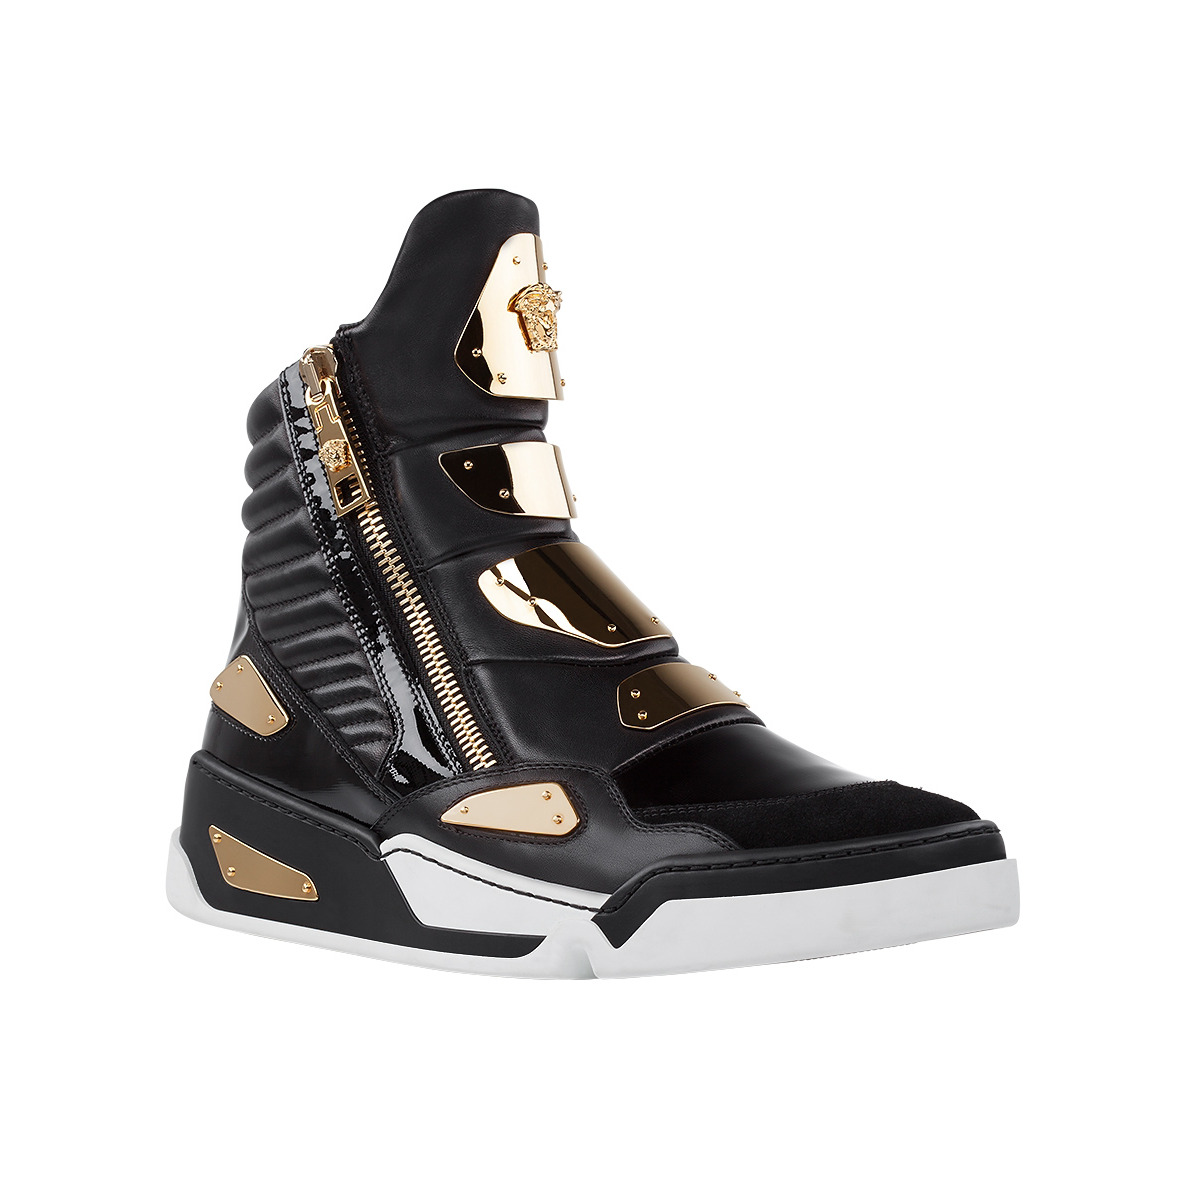 62b296a5c74cf High-top sneakers Crafted in soft leather and embellished with gold panels  #Versace #VersaceSneakers